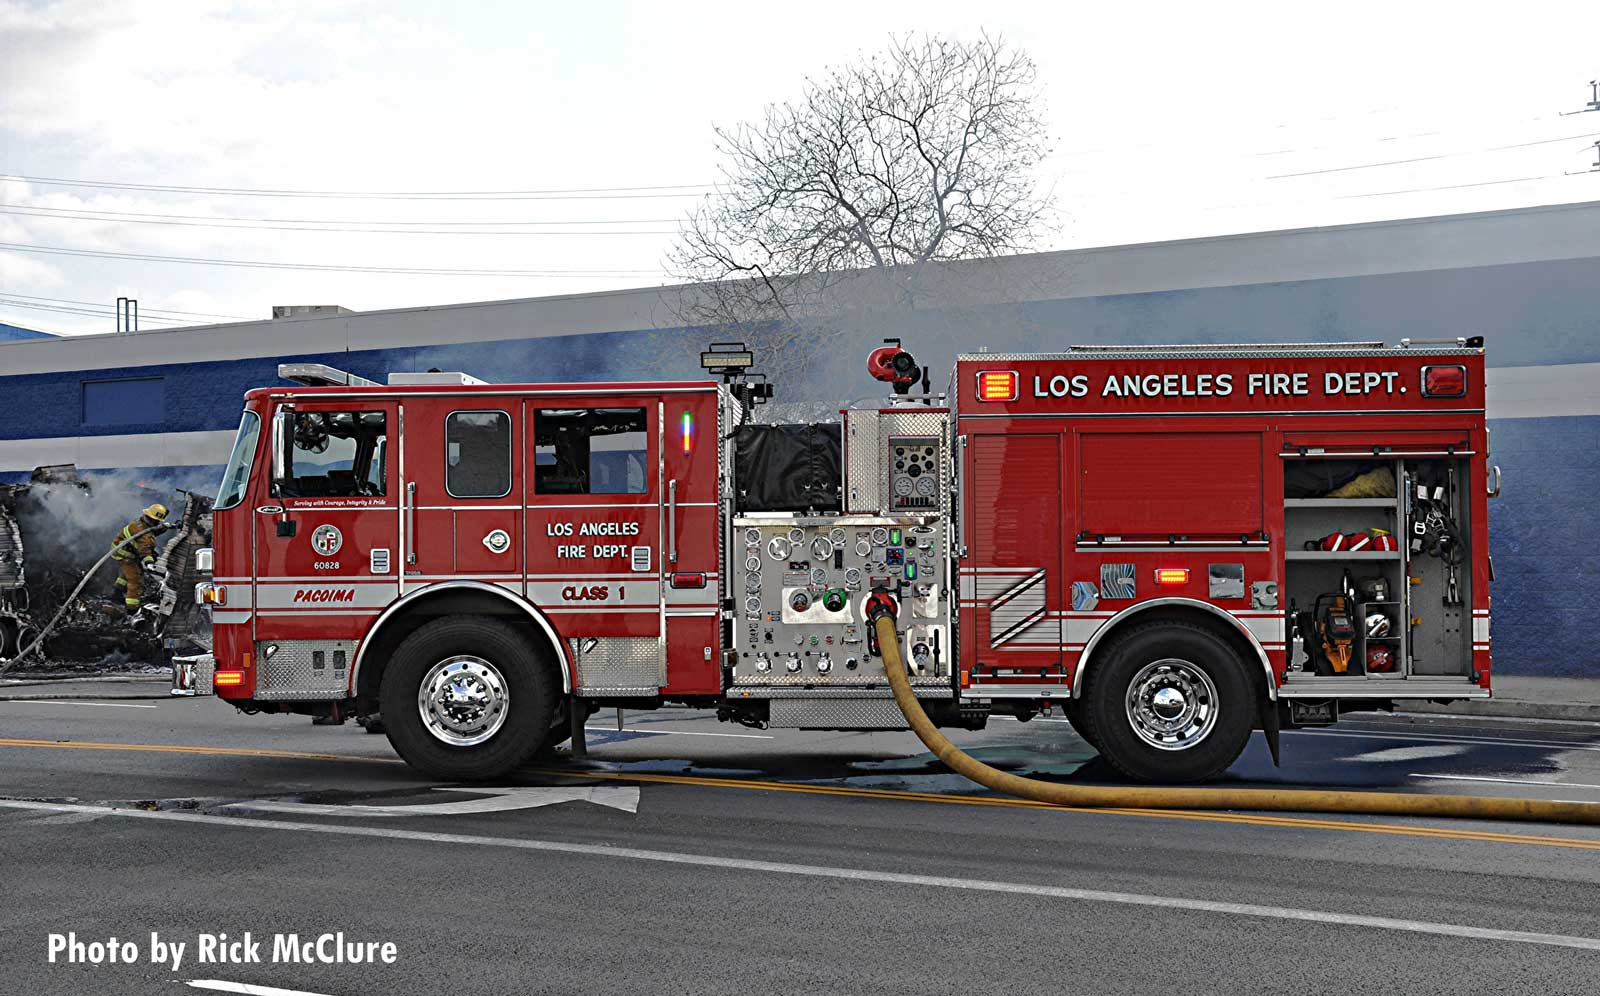 City of Los Angeles Fire Department fire truck